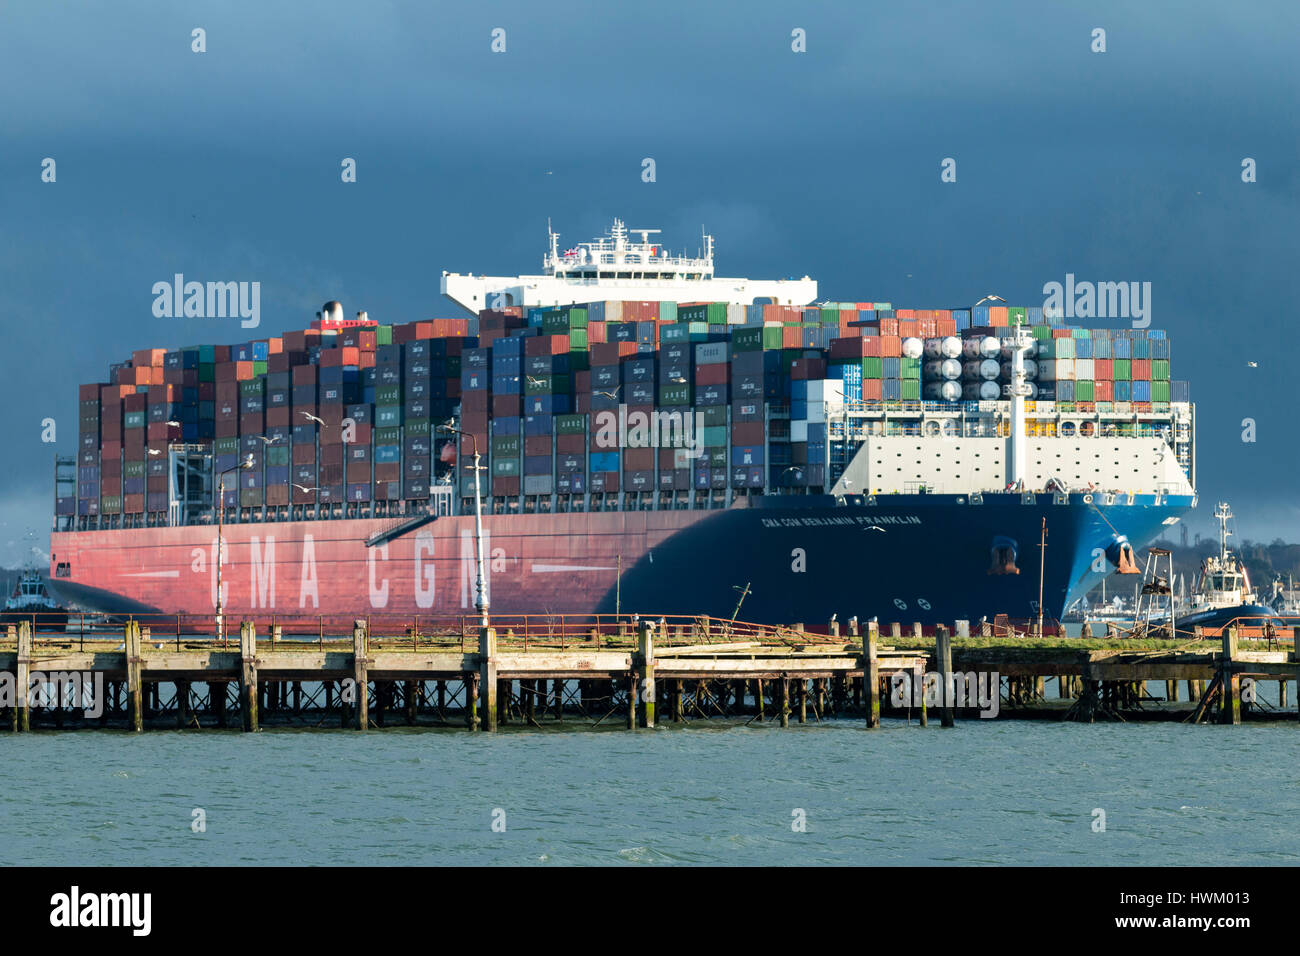 CMA CGM container ship Benjamin Franklin arriving at Southampton, UK  from Algeciras, Spain on 20 March 2017 attended - Stock Image